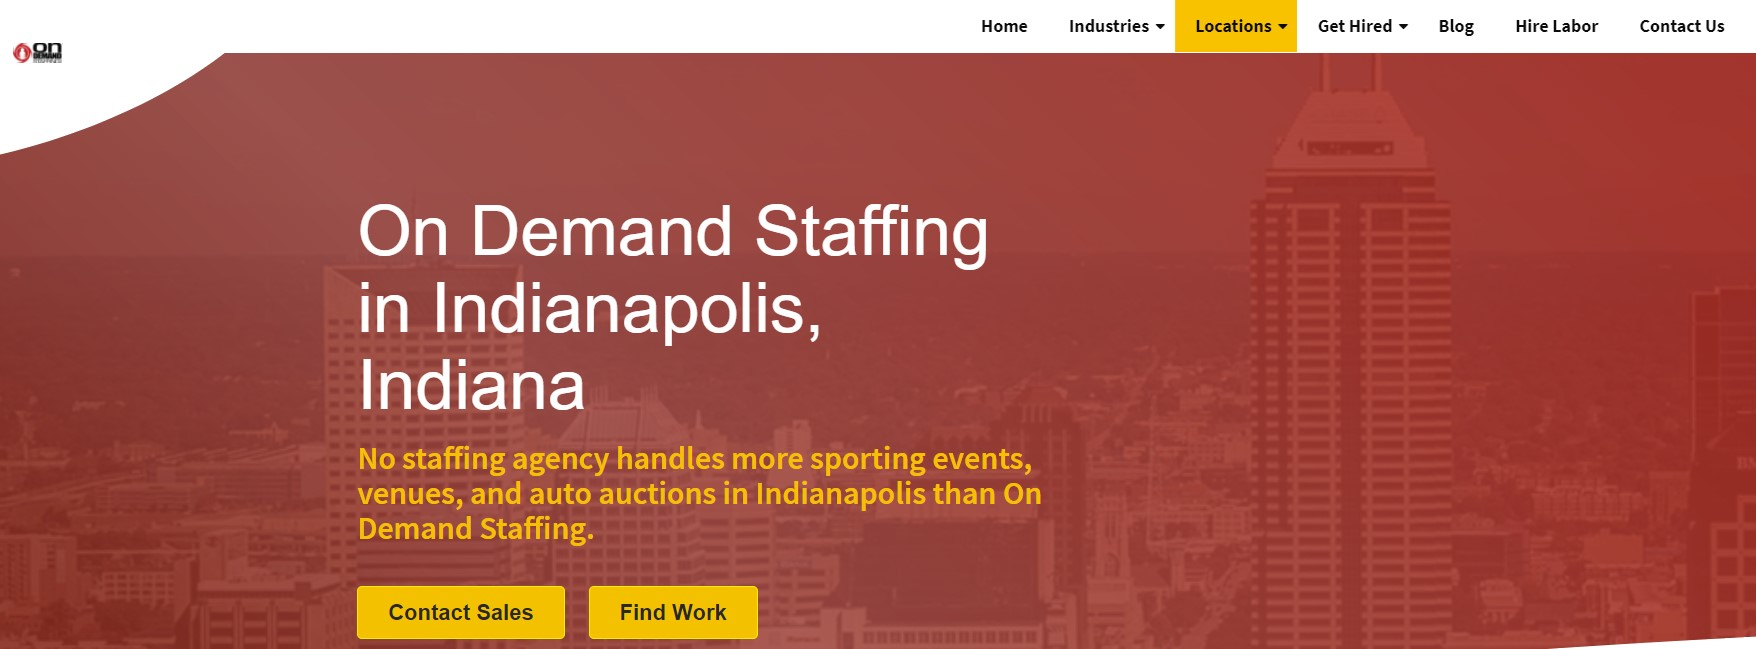 On Demand Staffing - Best Indianapolis Staffing Agency